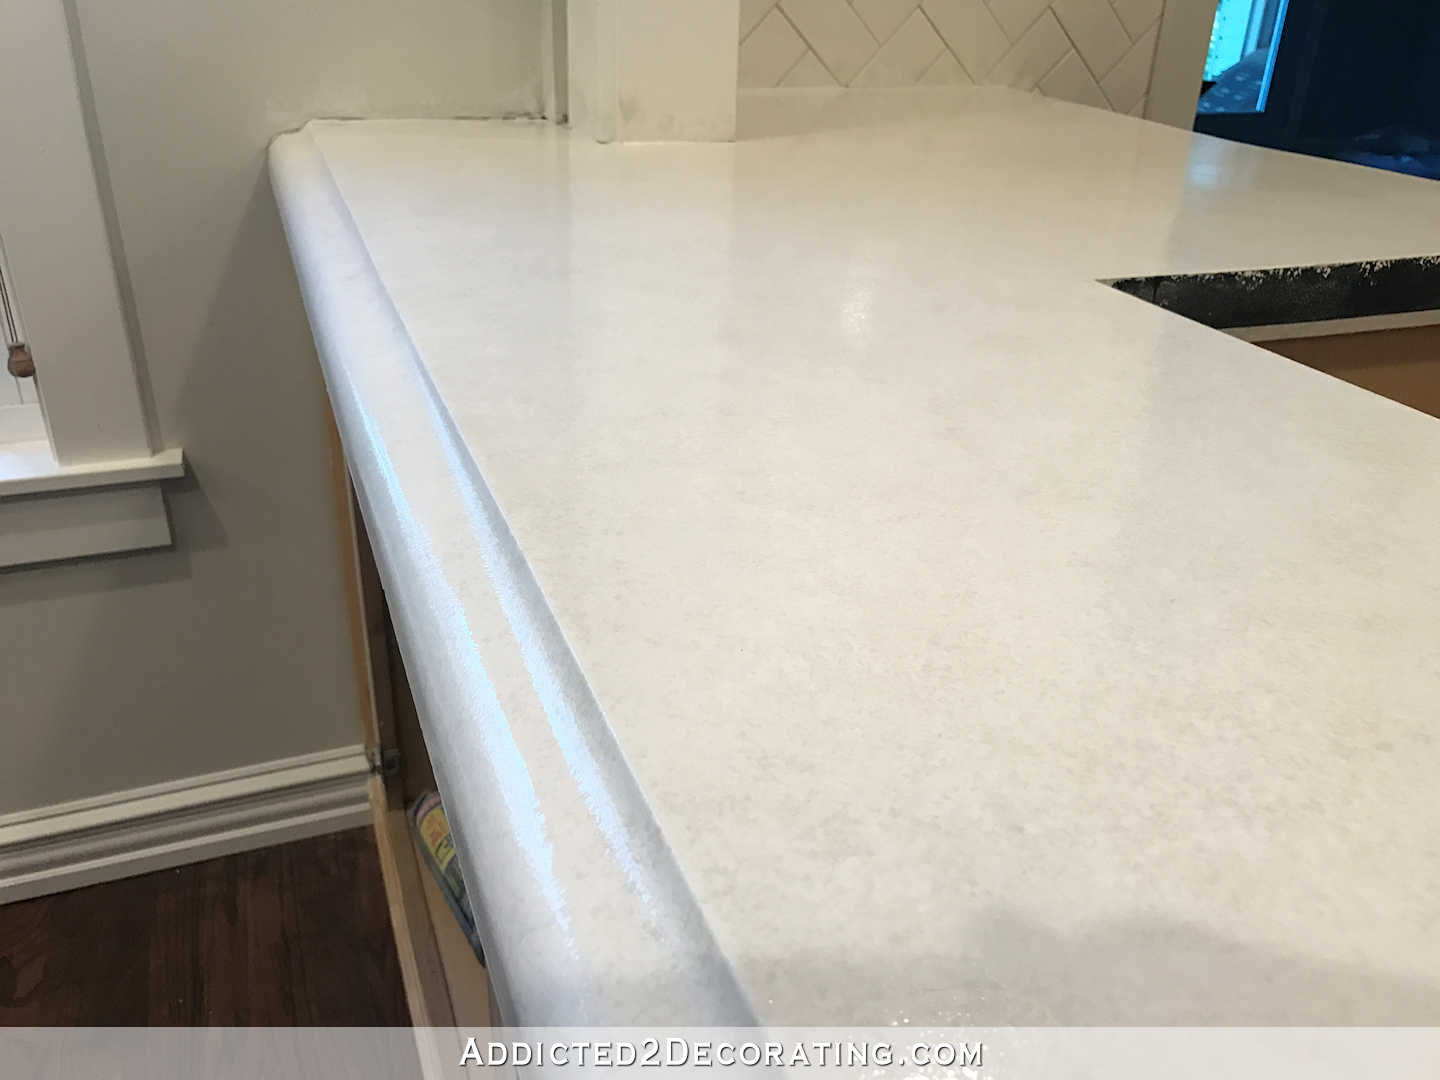 Finished Concrete Countertops Refinishing Concrete Countertops Part 3 Of 3 Addicted